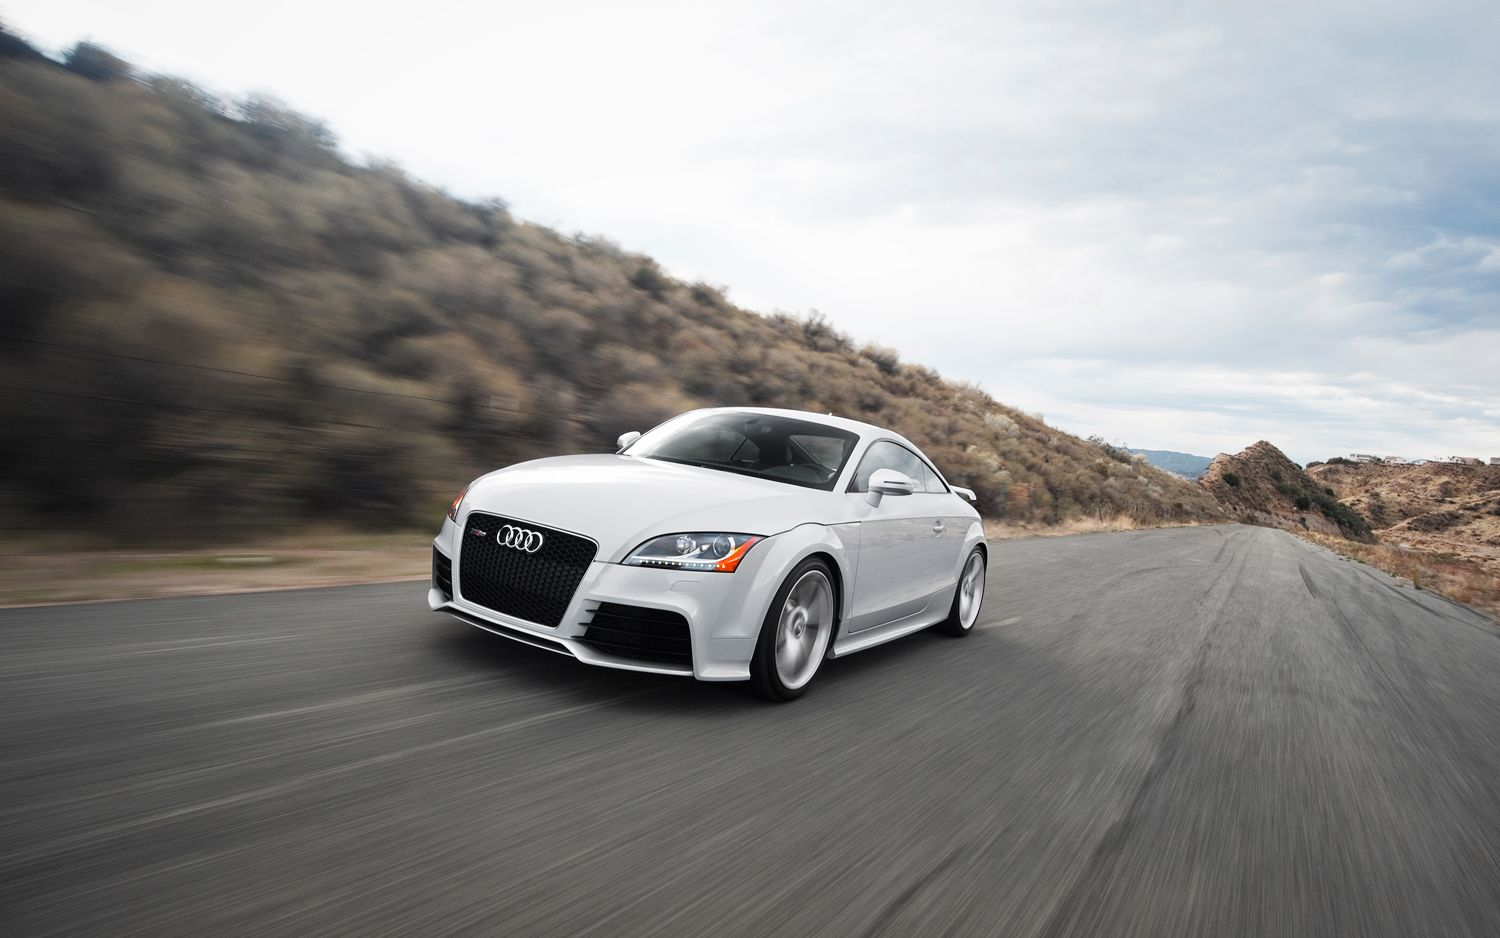 Ignition Episode 4: 2012 Audi TT RS Tested – Motor Trend YouTube Channel